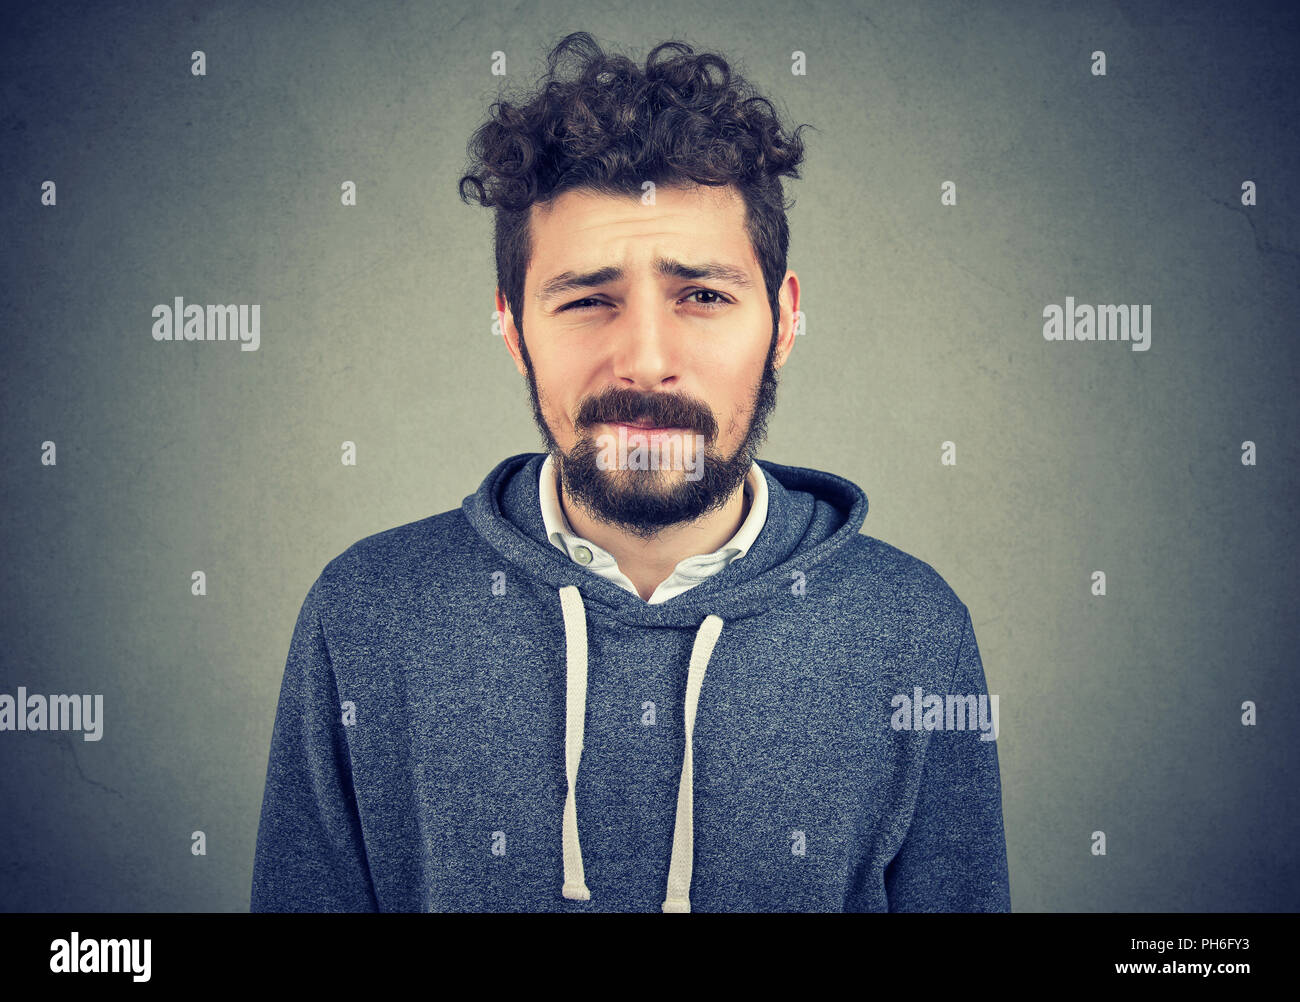 Handsome young beard man looking dubious and curious on gray background - Stock Image